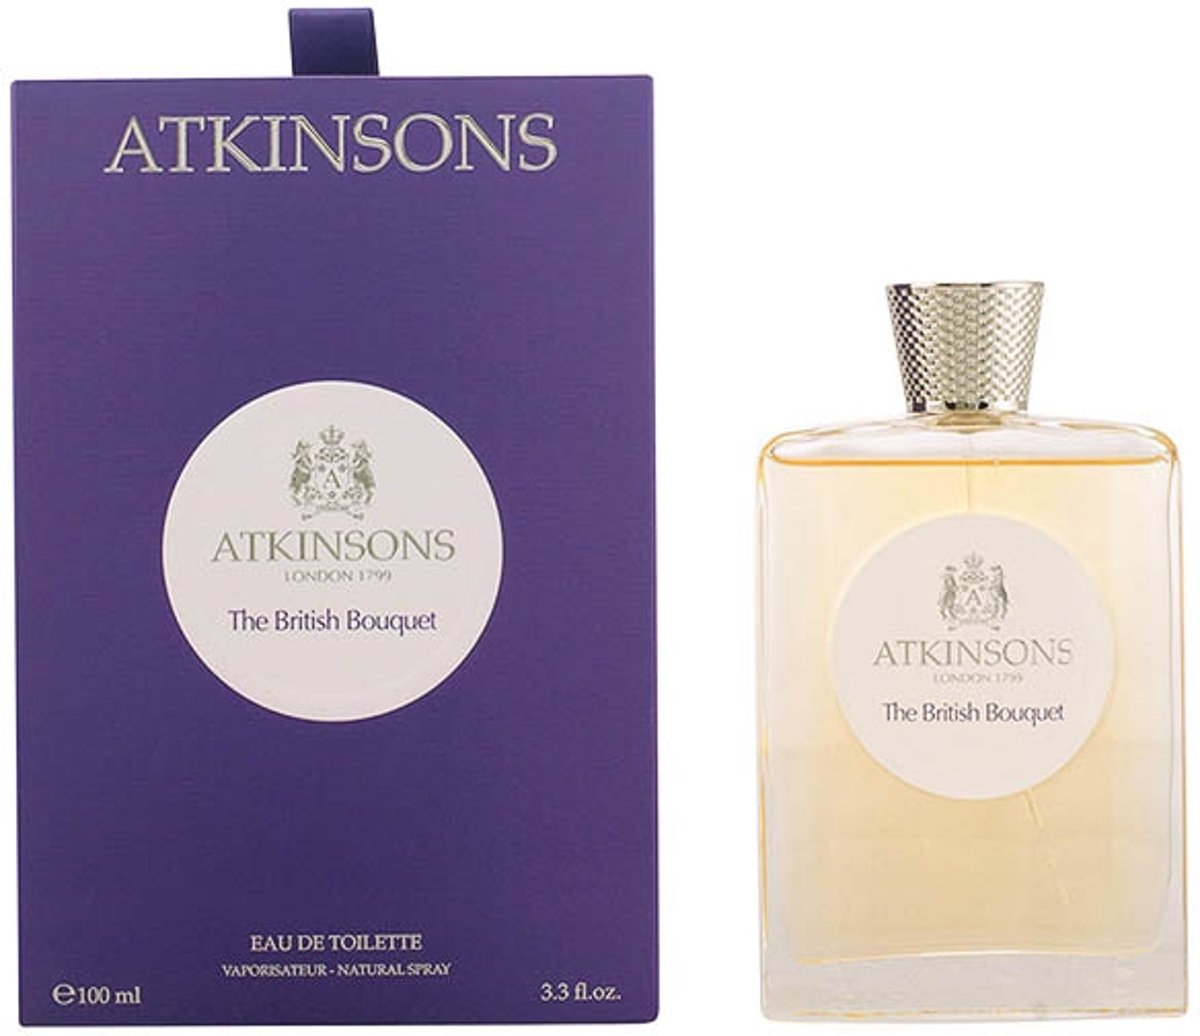 Atkinsons The Legendary Collection The British Bouquet Eau de Toilette Spray 100 ml